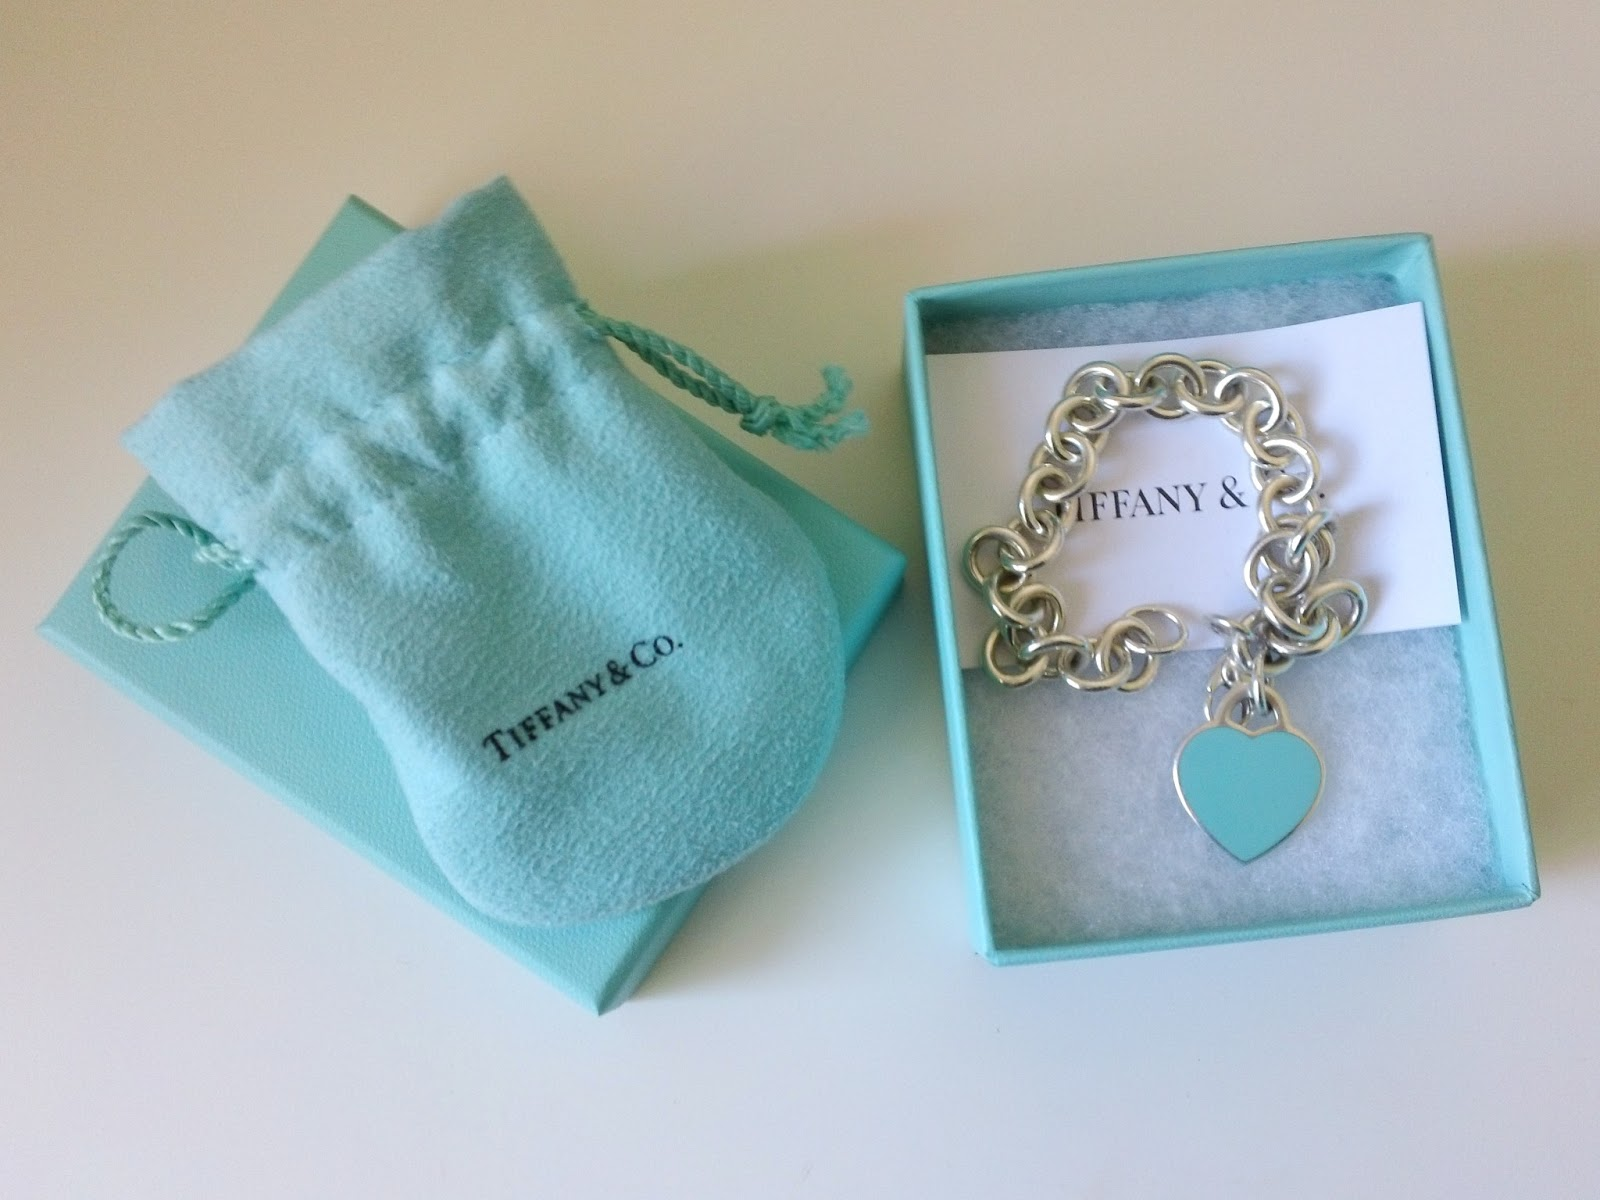 My Boyfriend Got Me This Beautiful Bracelet From Tiffanys